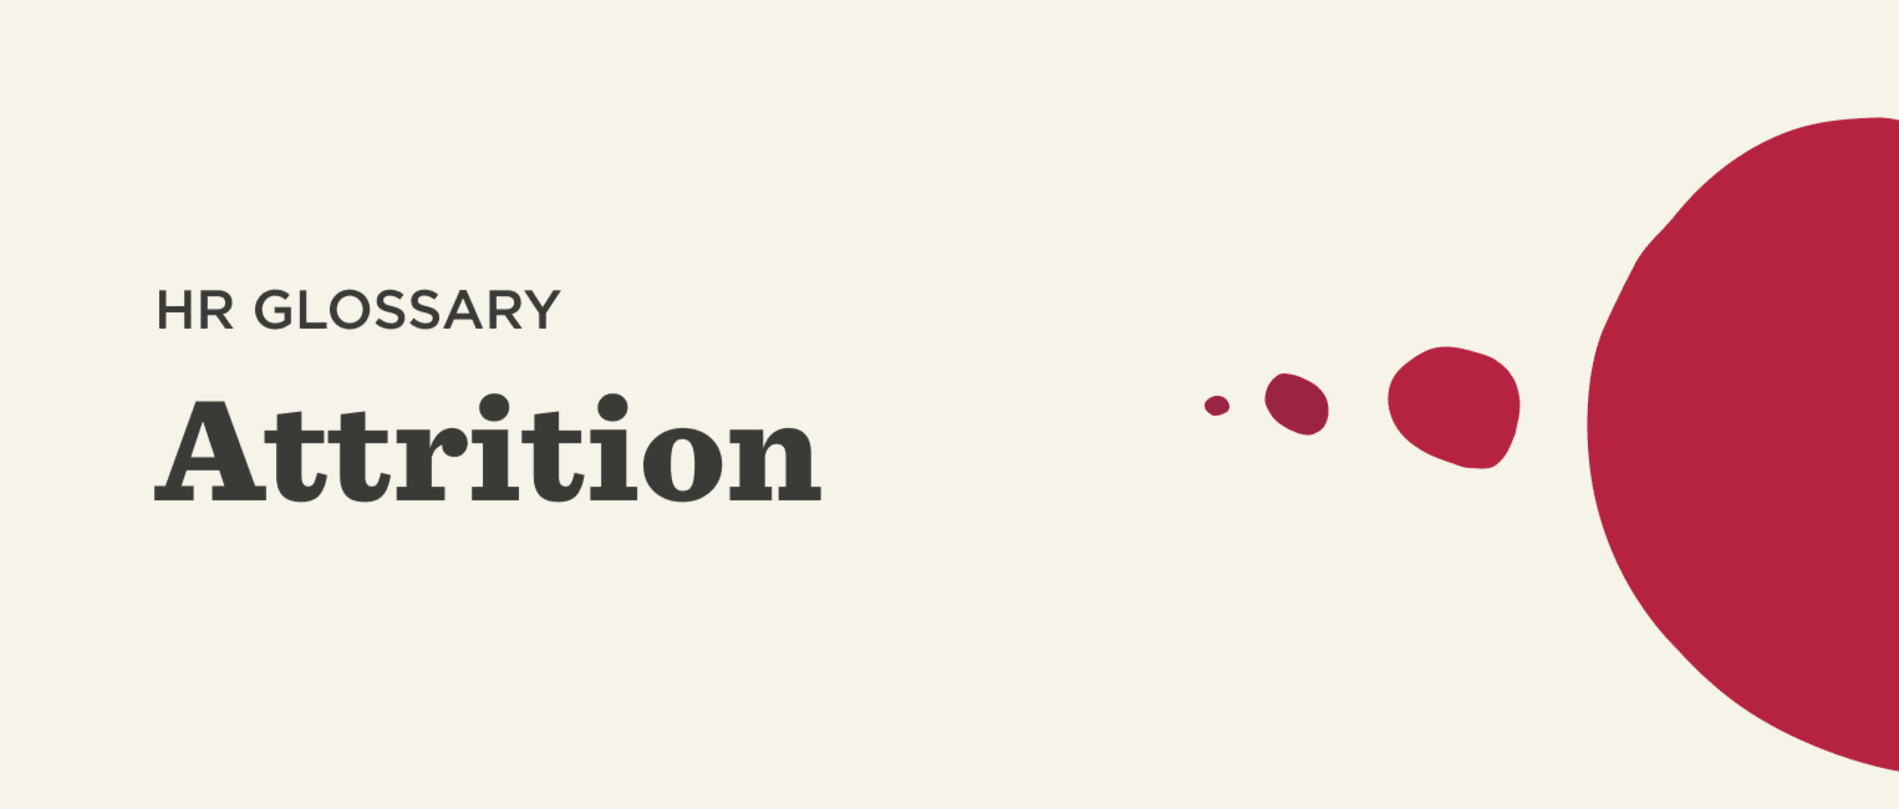 Attrition-Glossary-banner